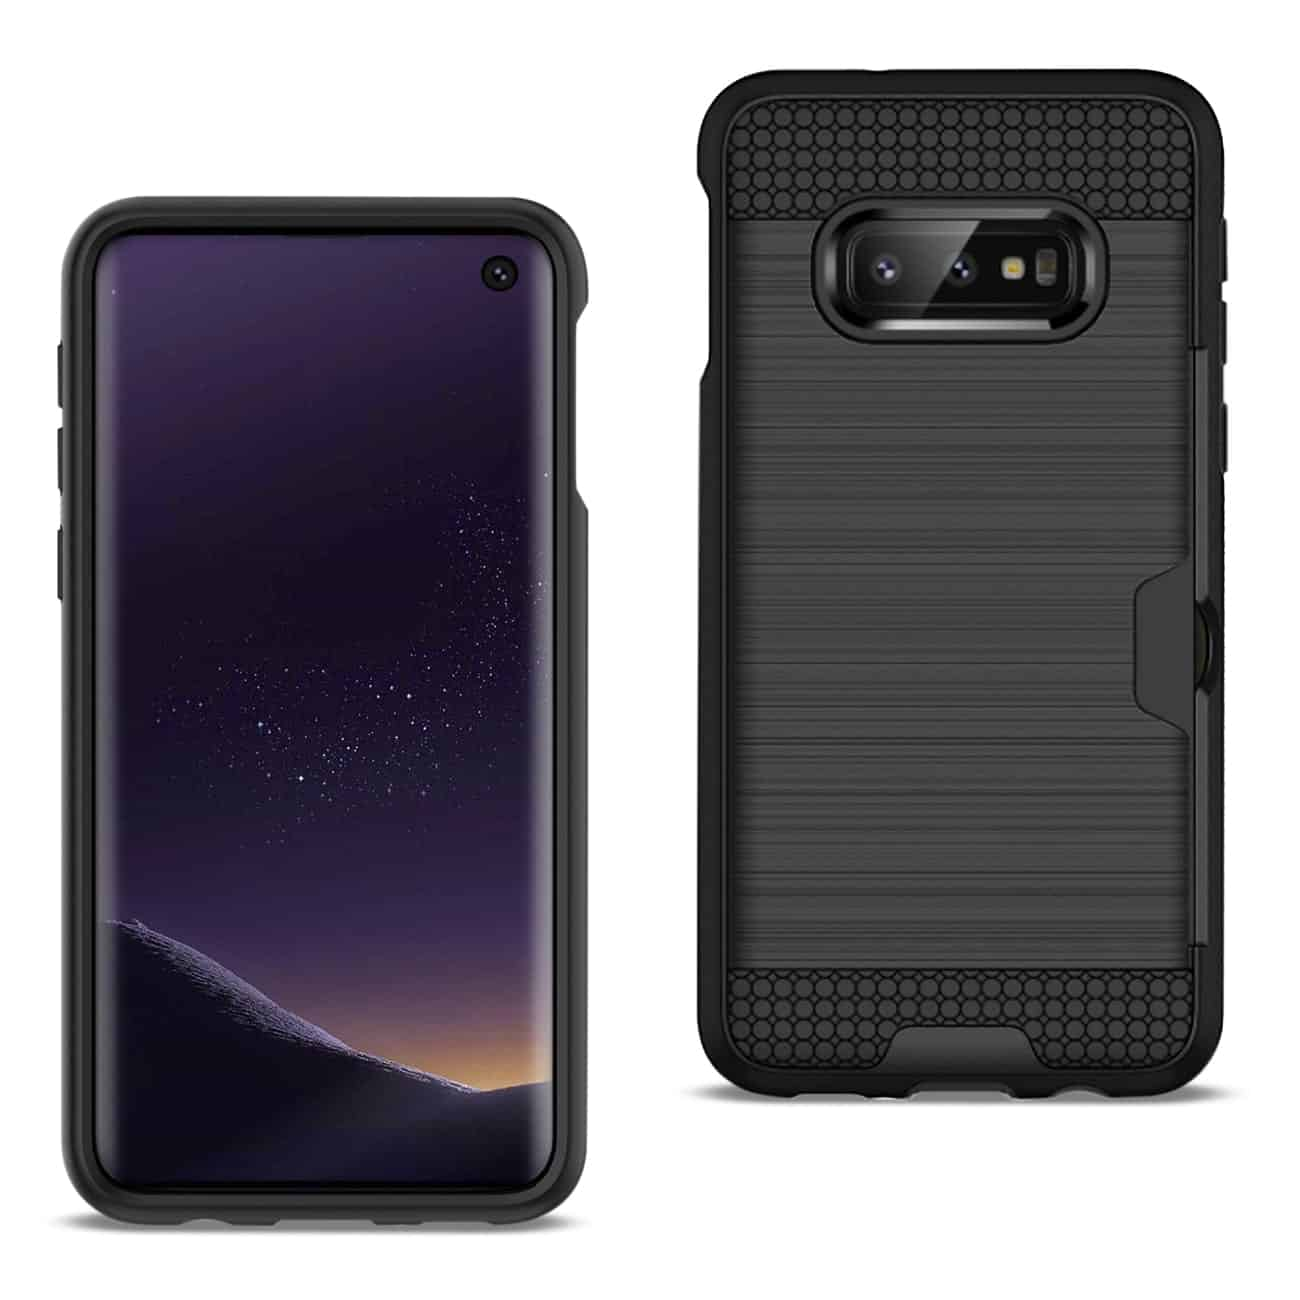 SAMSUNG GALAXY S10 Lite(S10e) Slim Armor Hybrid Case With Card Holder In Black